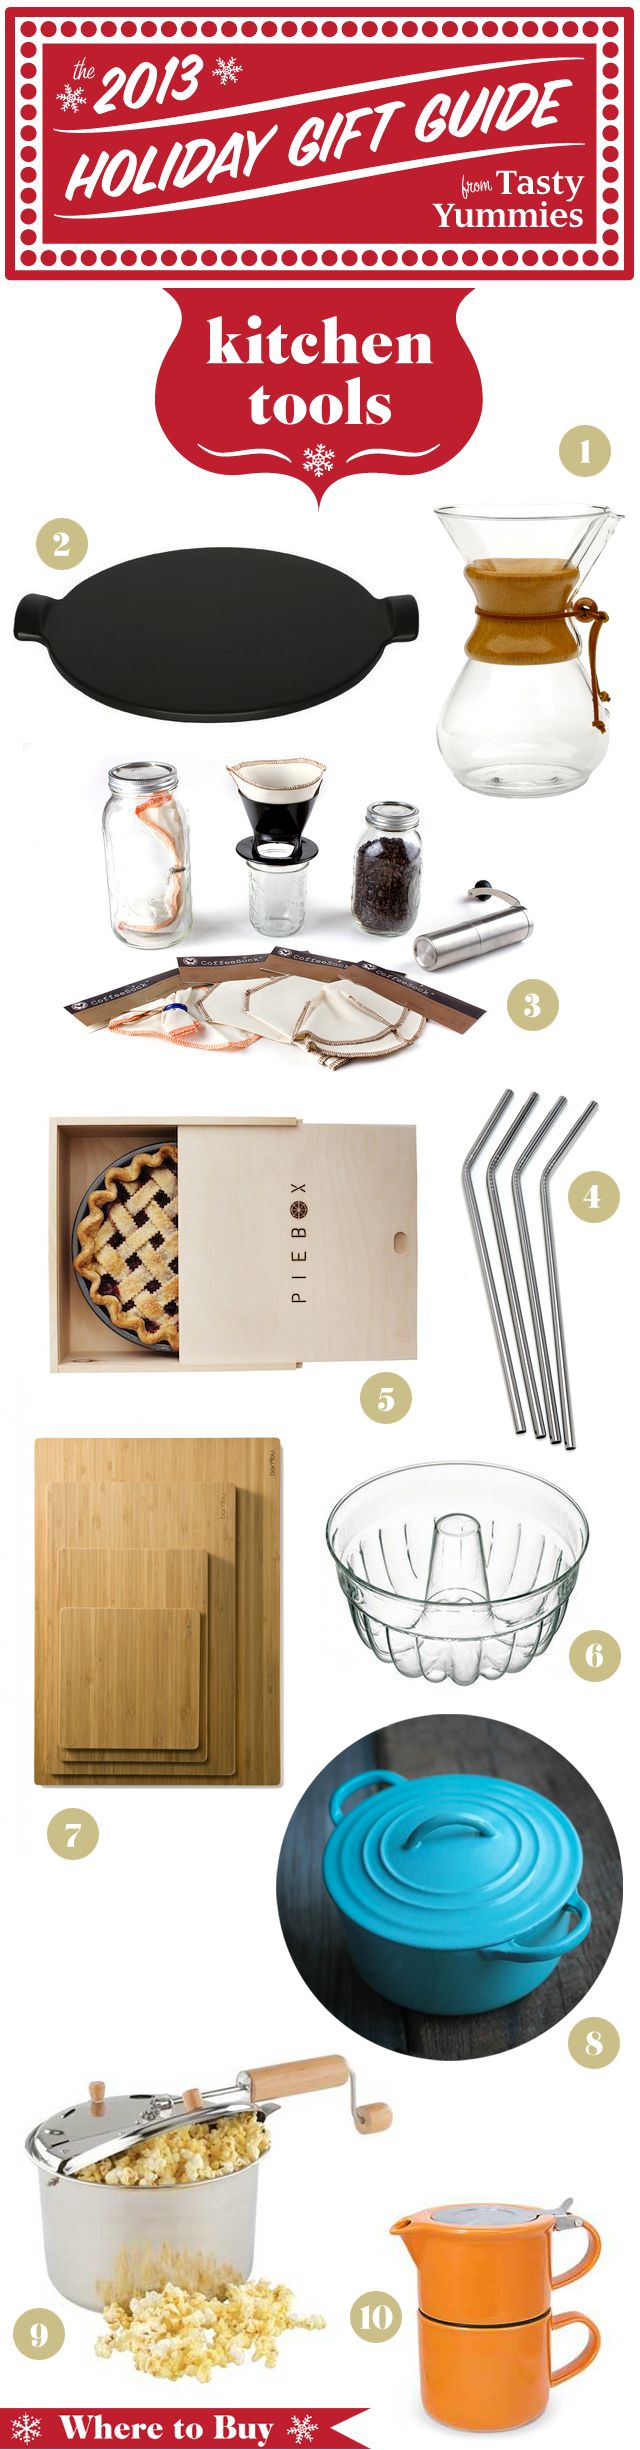 Tasty Yummies Holiday Gift Guide: Kitchen Tools